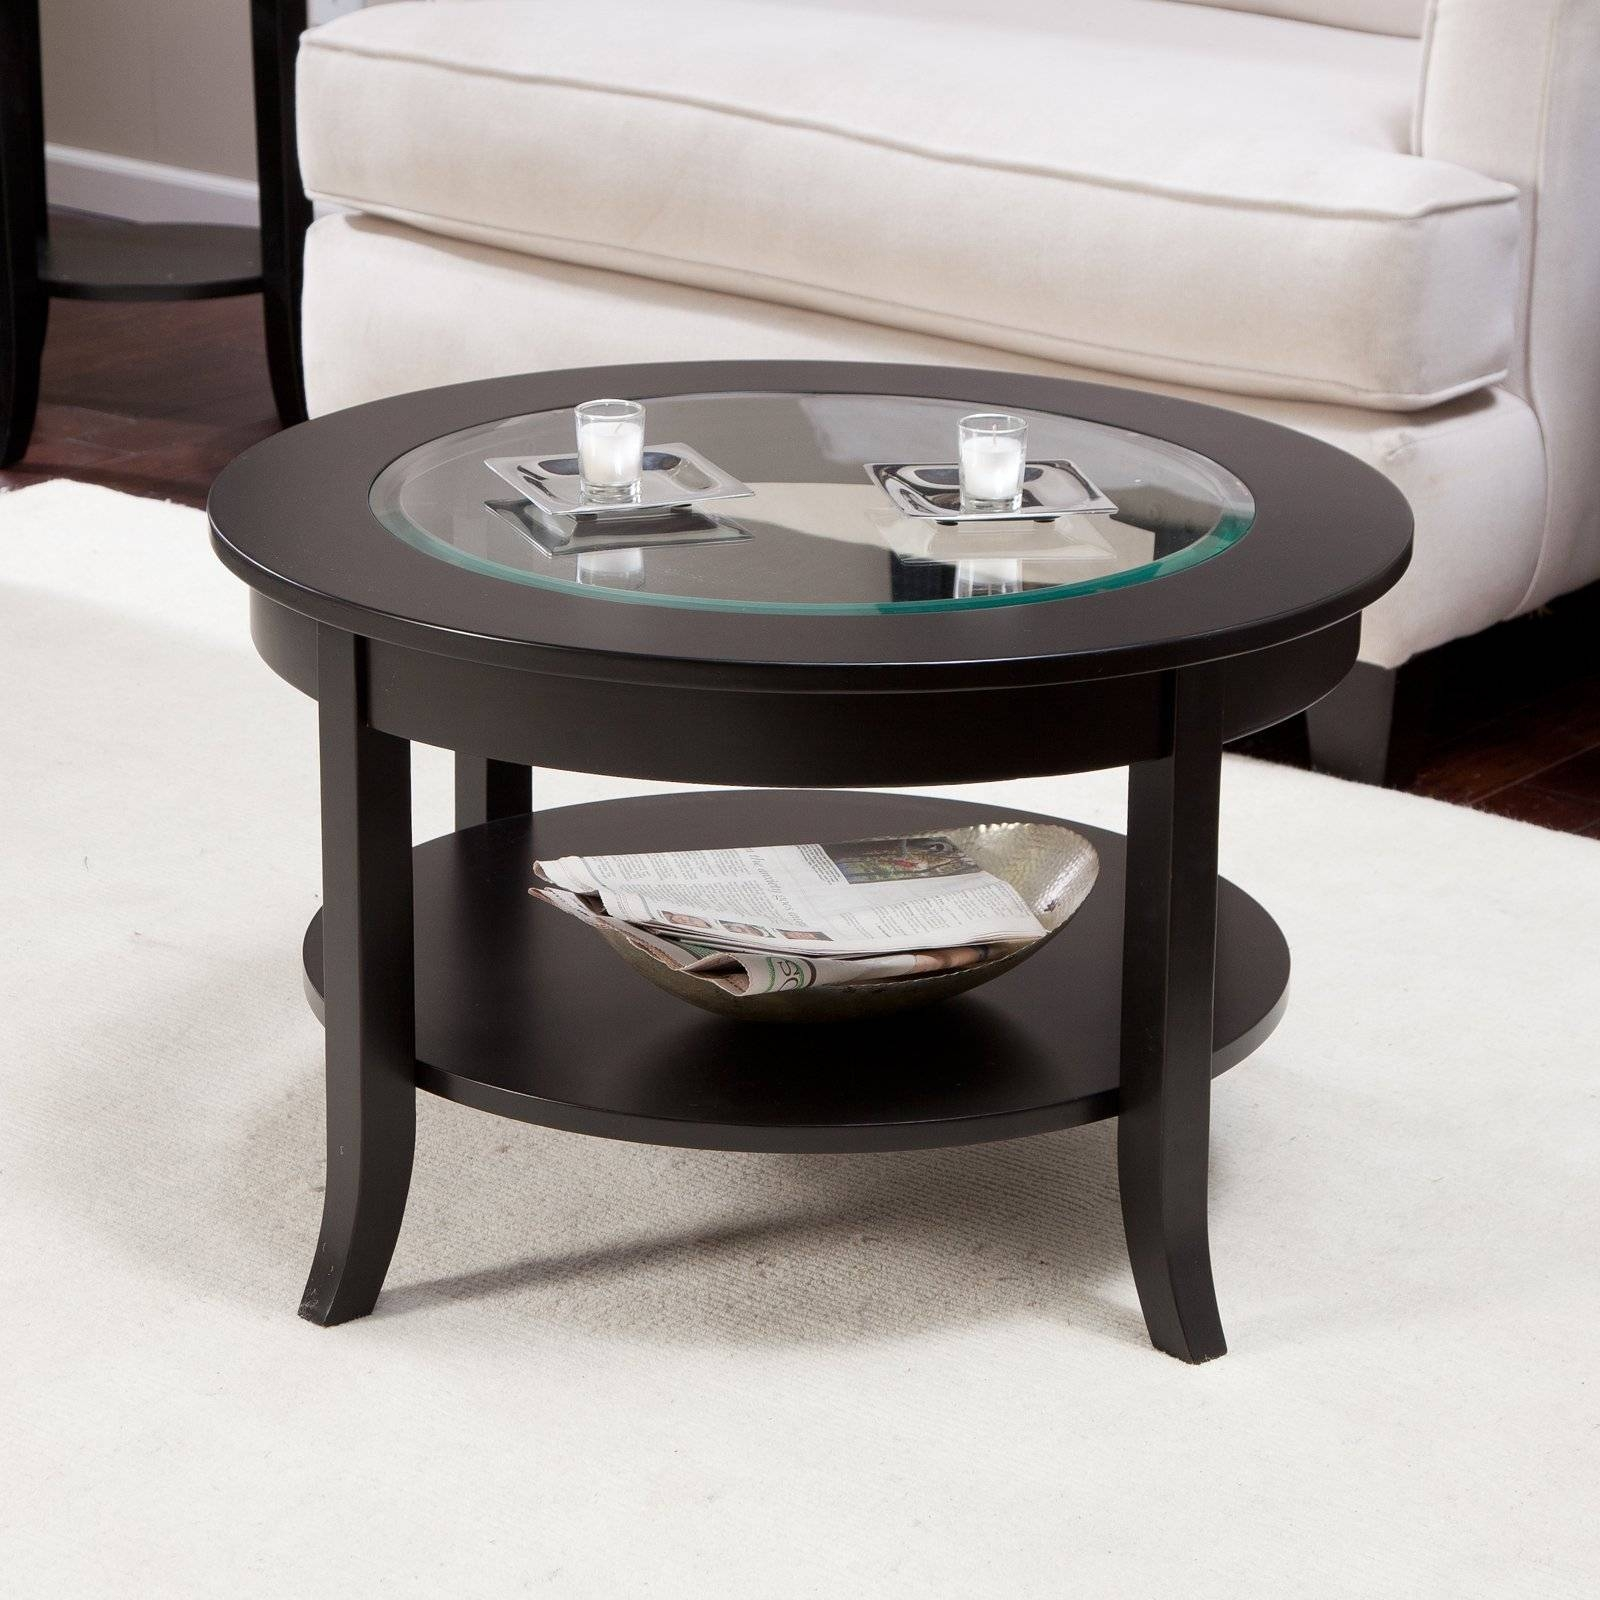 Furniture: Modern And Contemporary Design Of Espresso Coffee Table With Regard To Contemporary Round Coffee Tables (View 10 of 15)